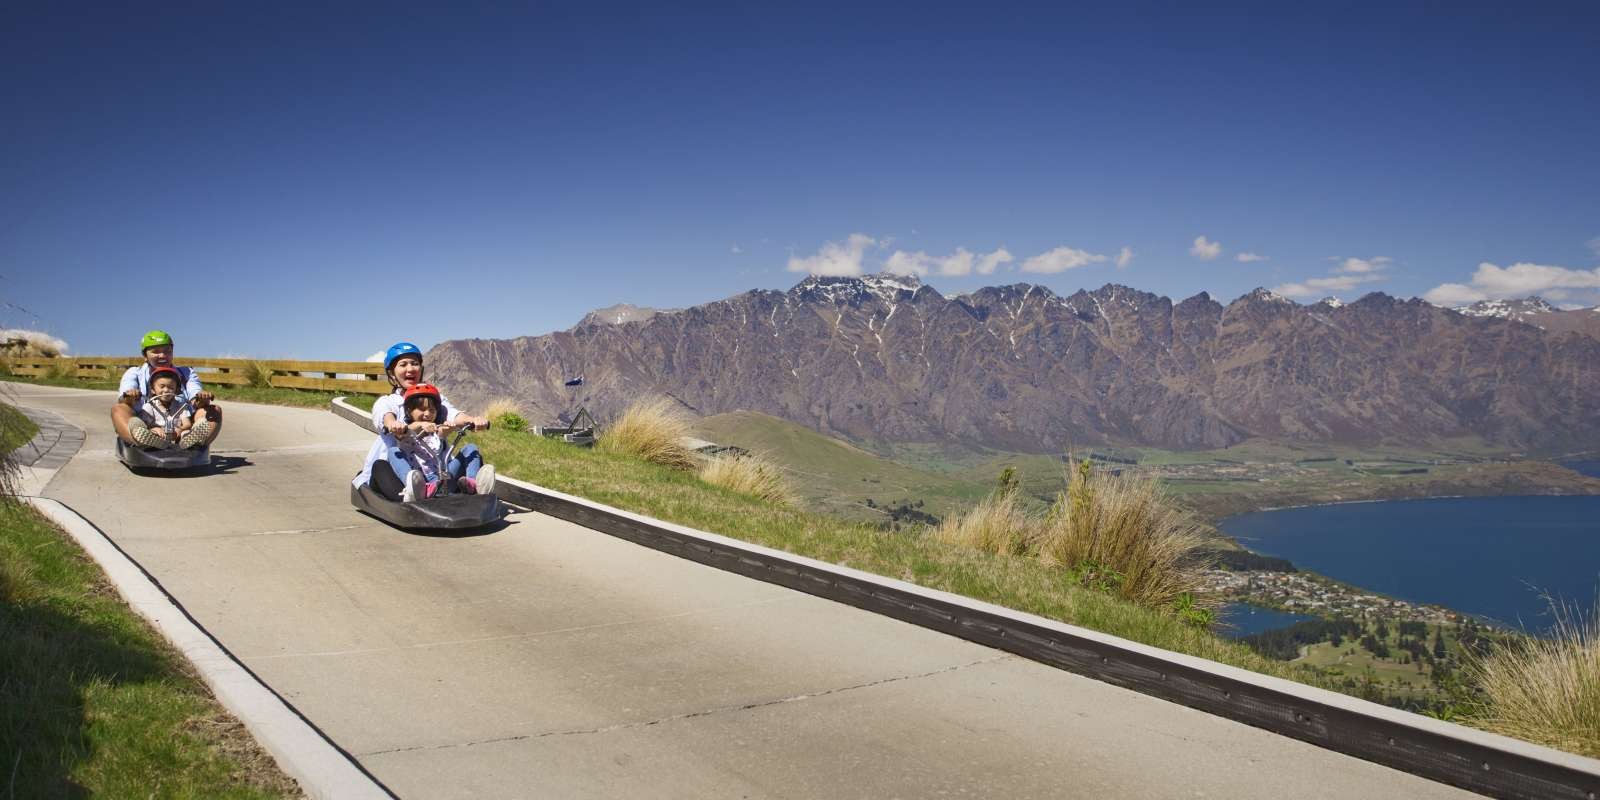 Family on a luge ride at Skyline Goldola Queenstown